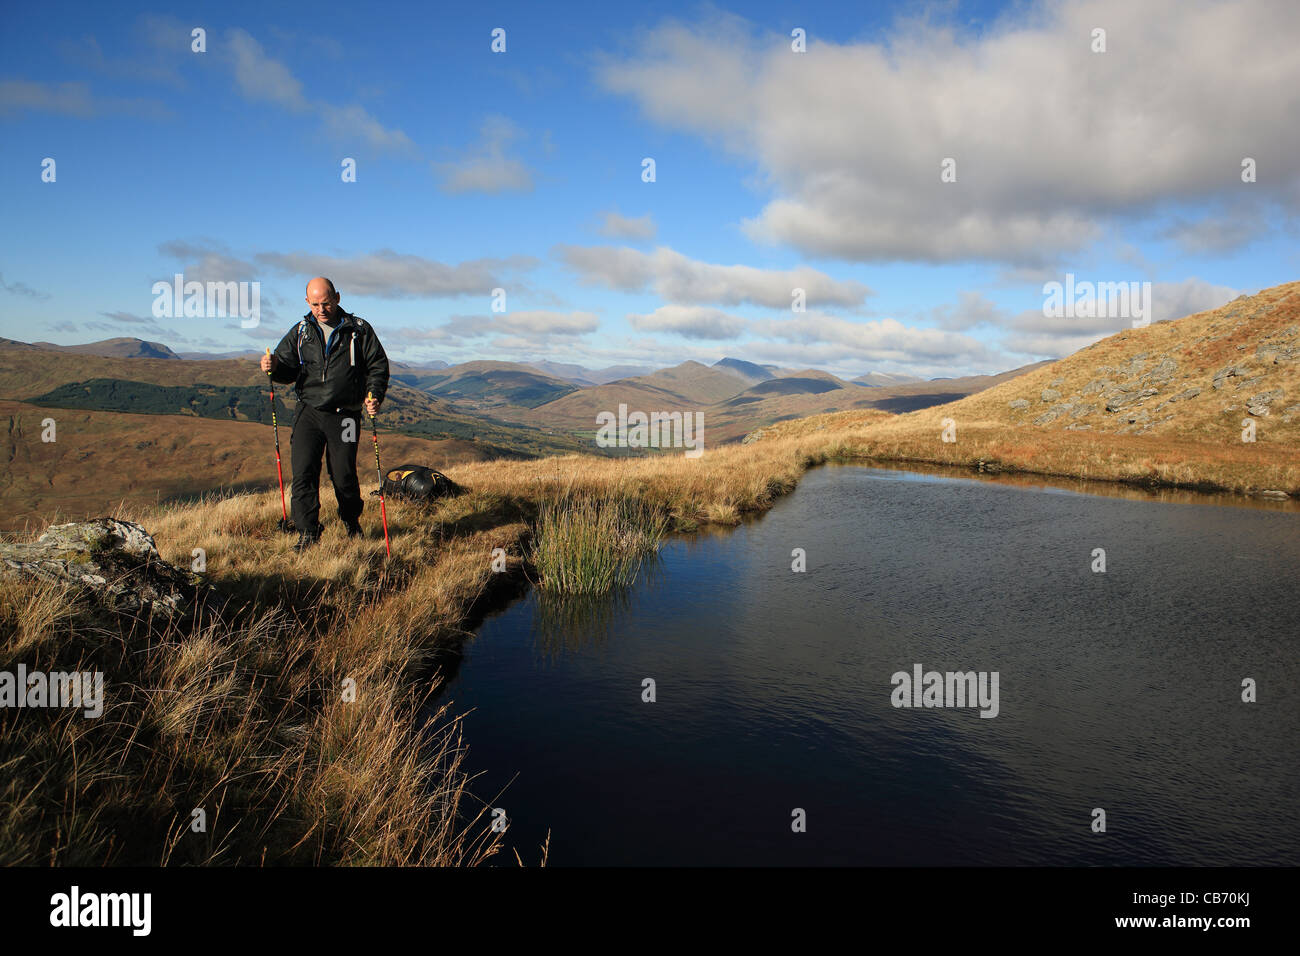 Hillwalker walking around a Lochan on the slopes of Cruach Ardrain with the mountains beyond Tyndrum in the background - Stock Image